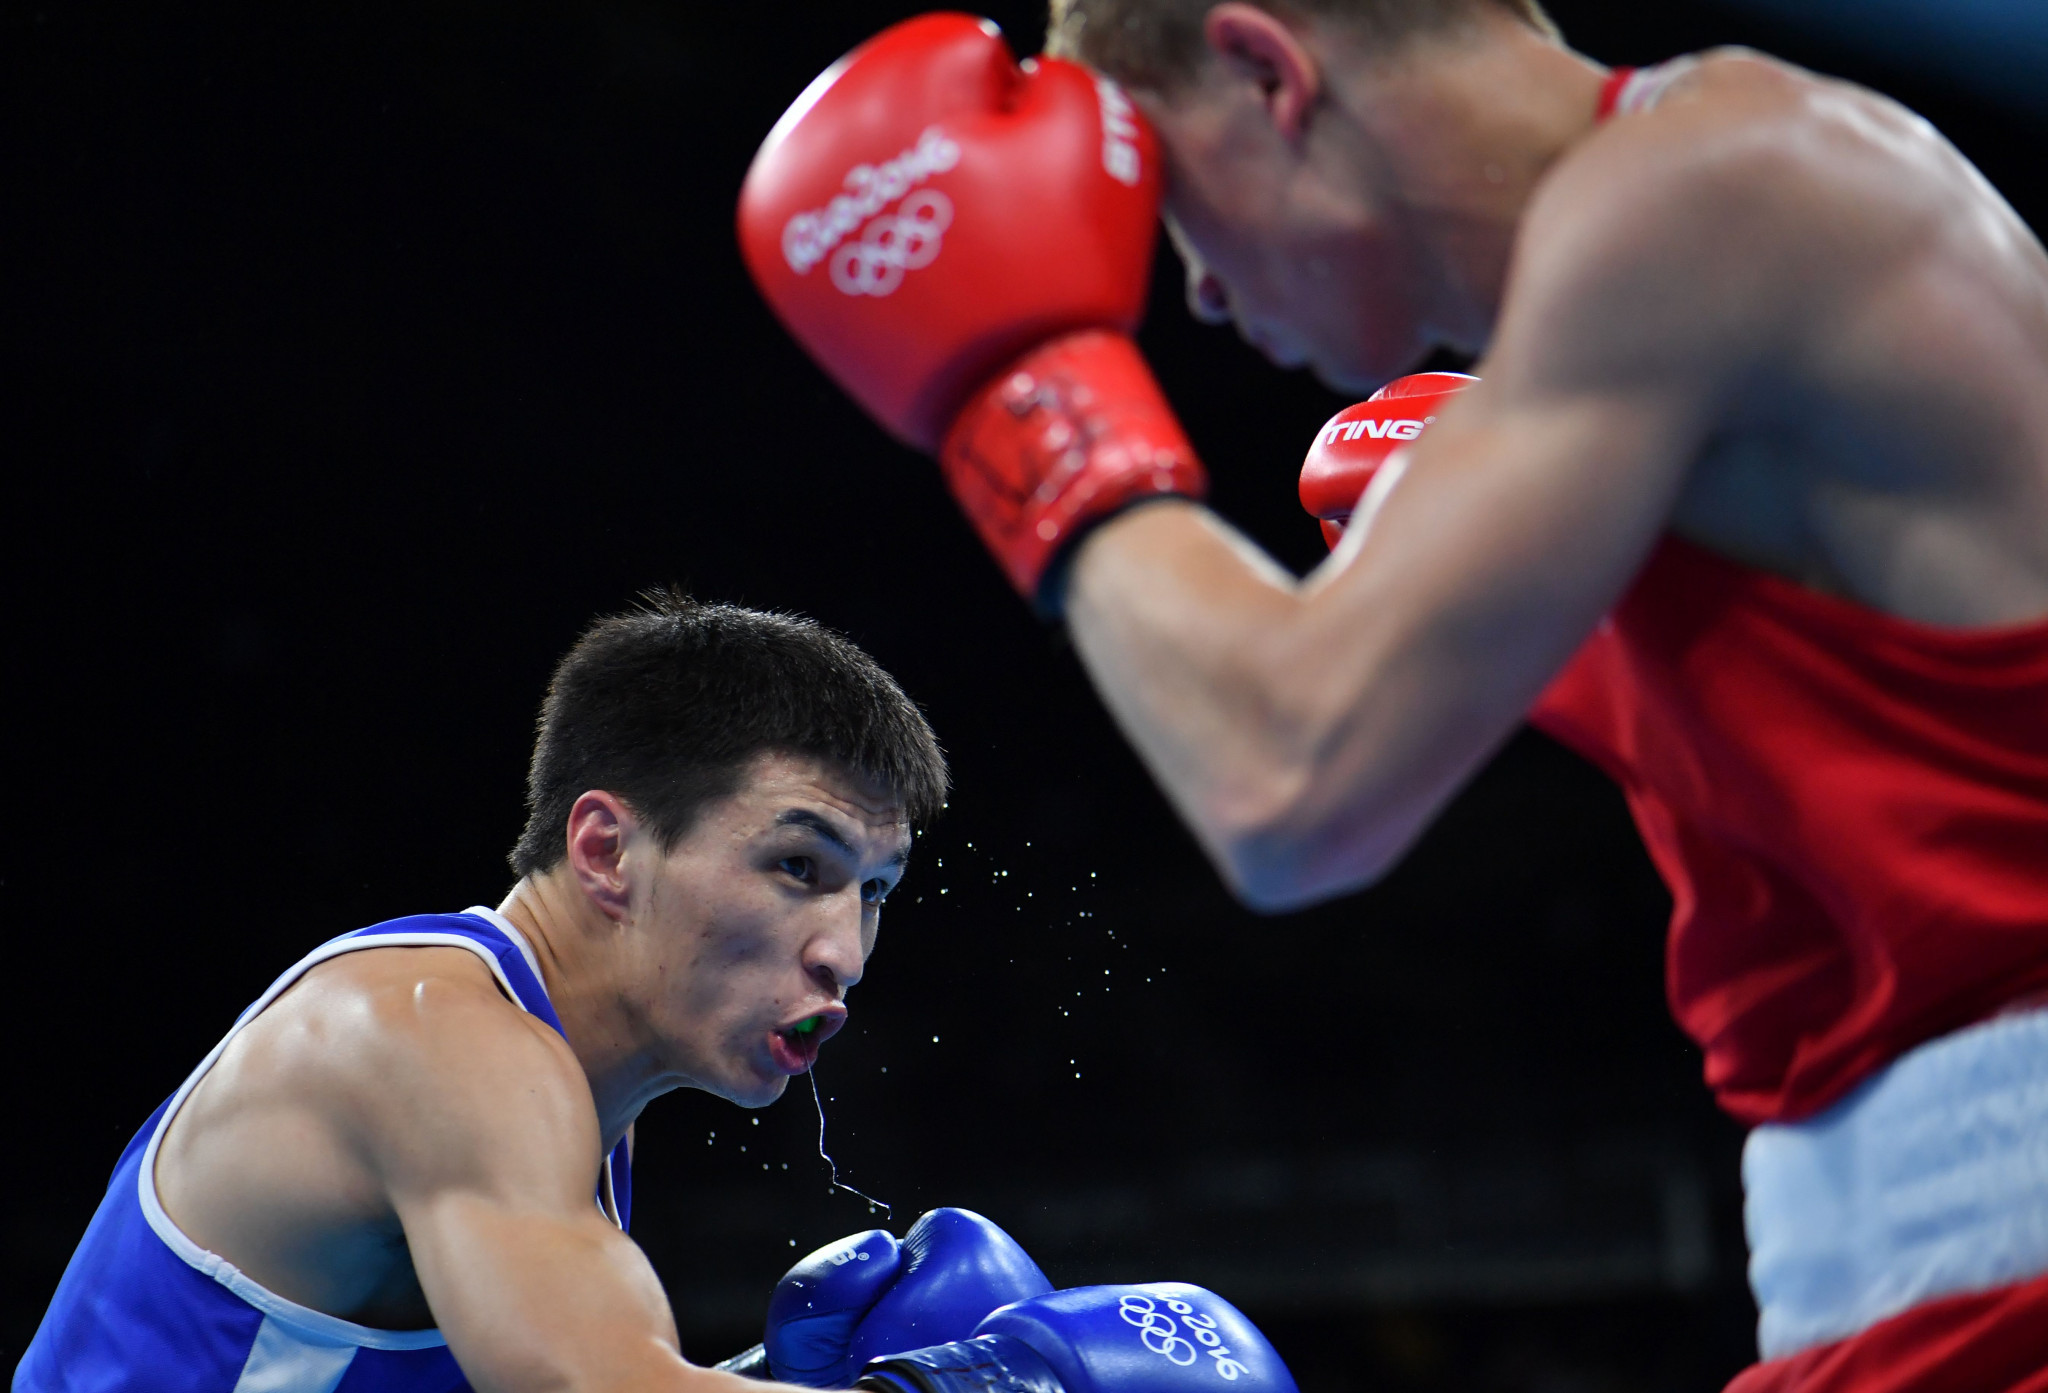 Kyrgyzstan boxers return to national training centre following COVID-19 break